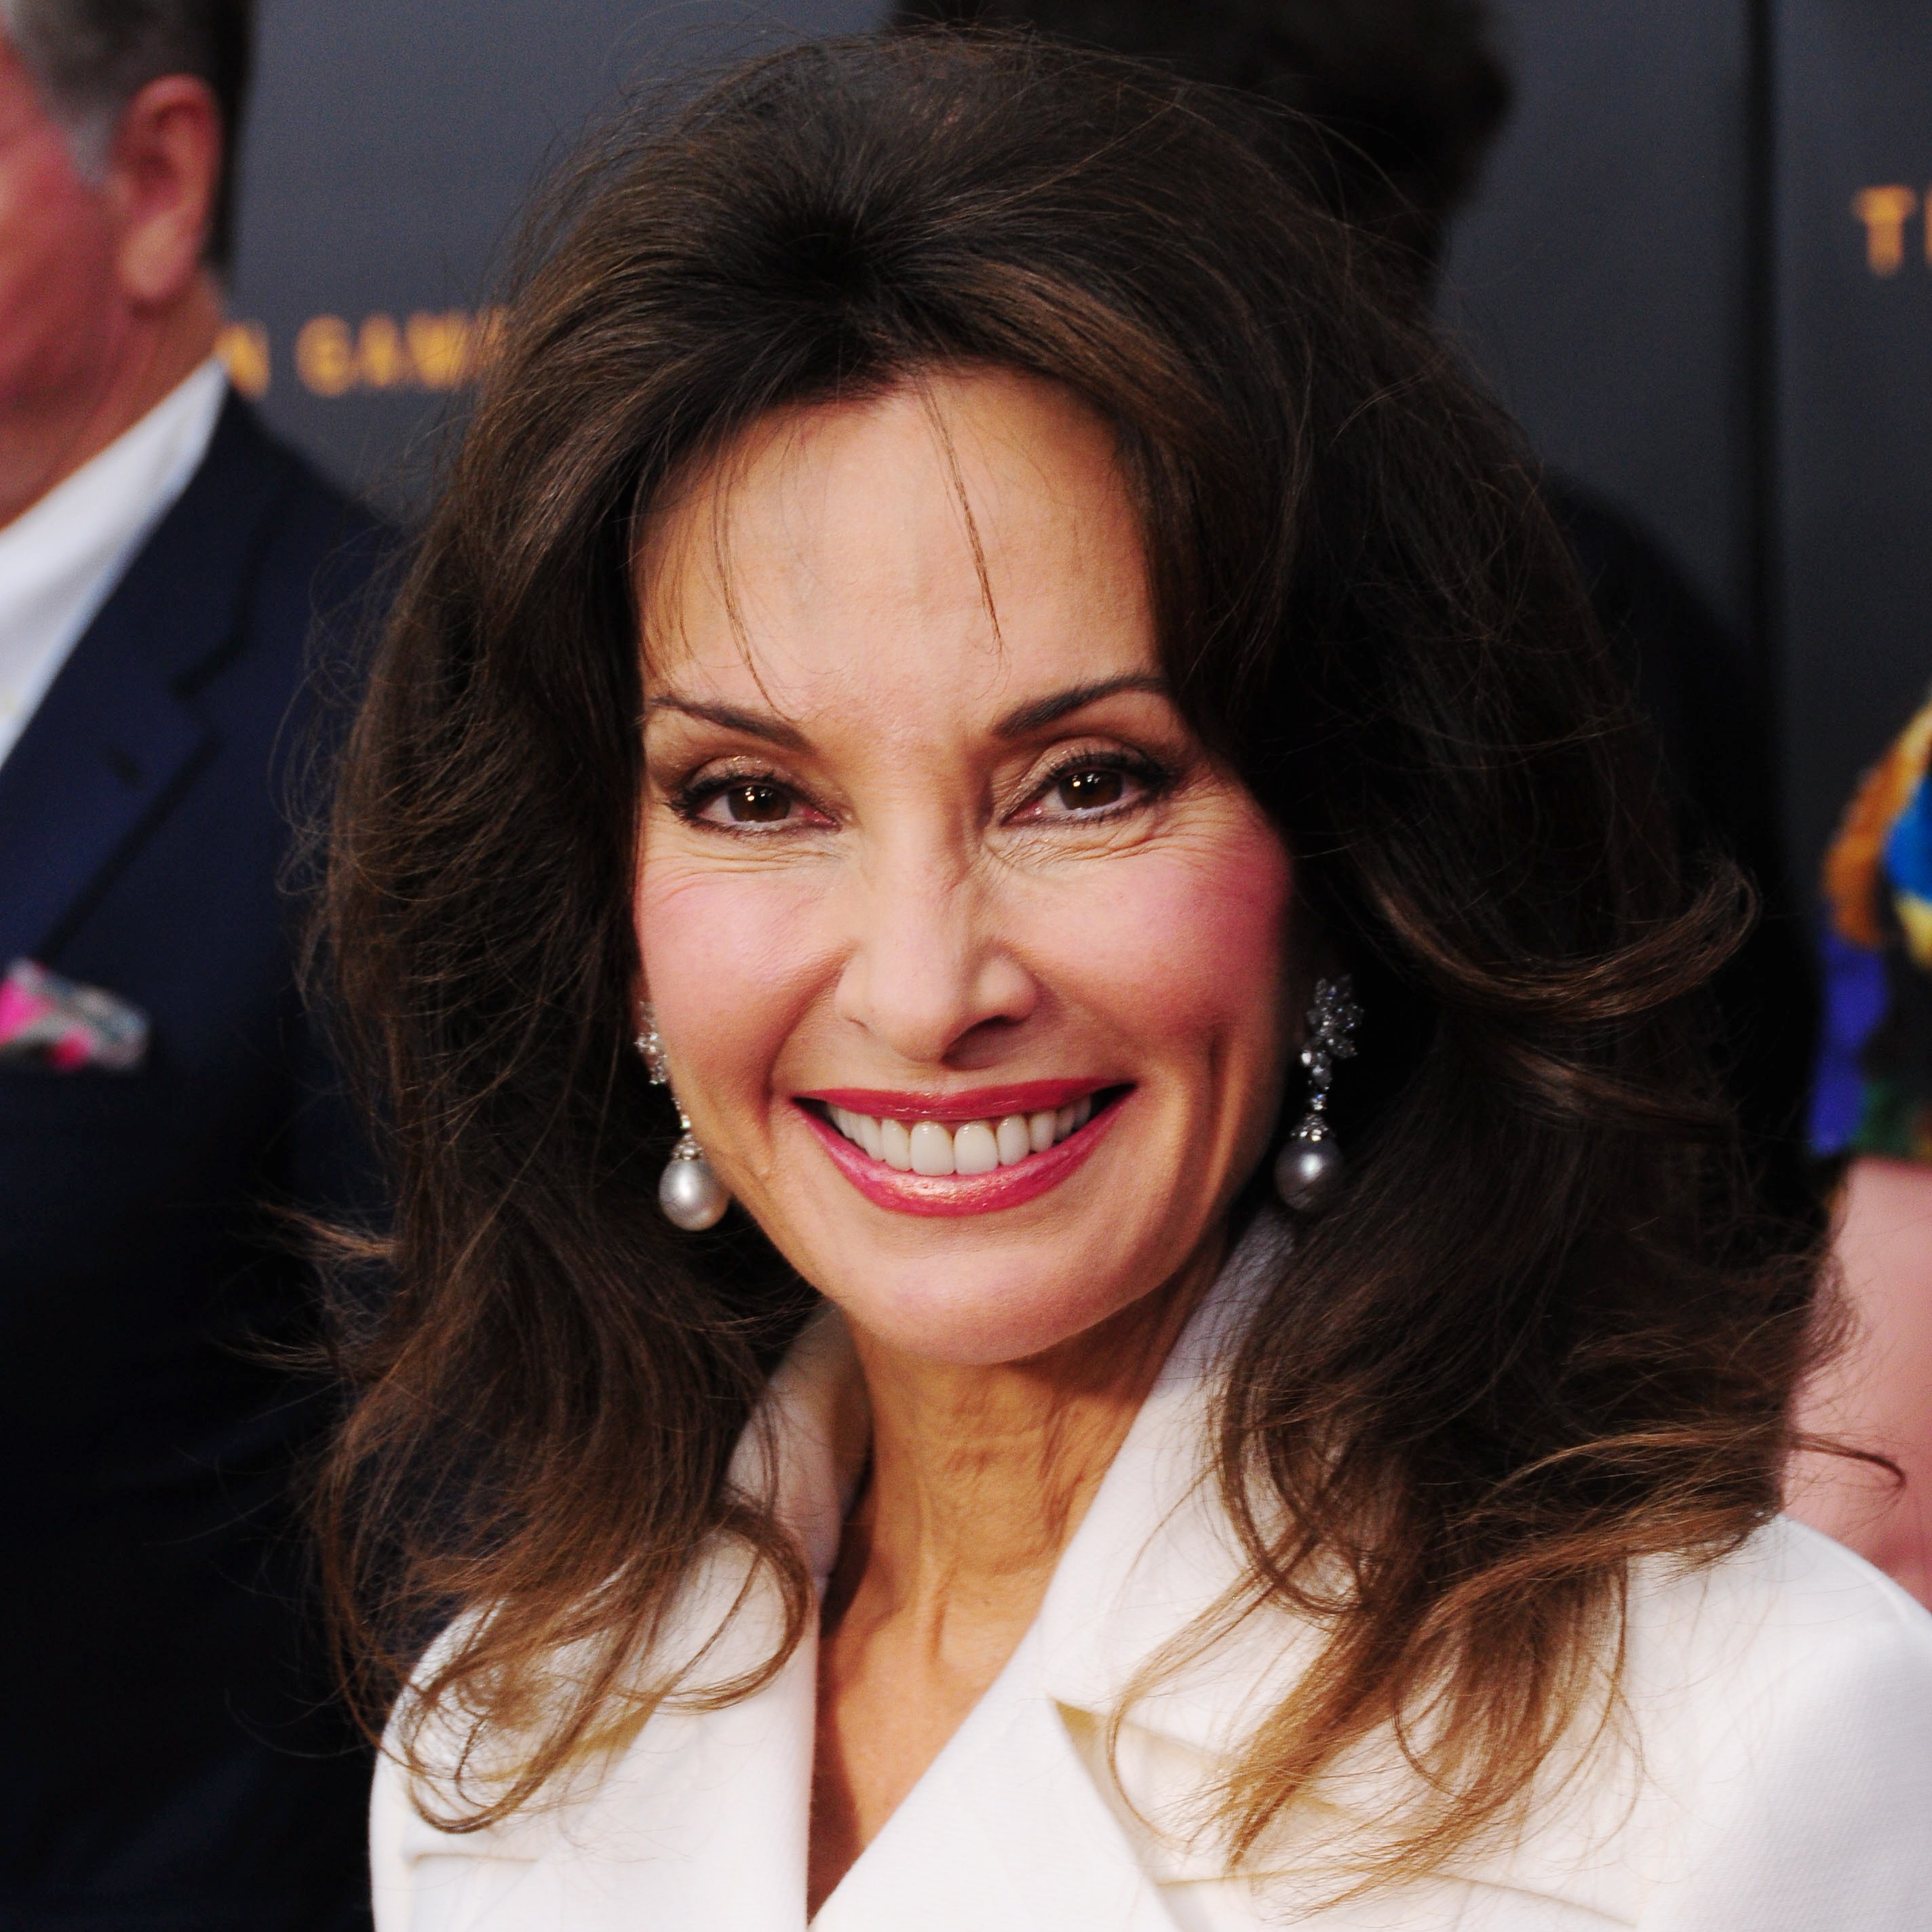 Susan Lucci 'The Imitation Game' New York Premiere at Ziegfeld Theater hosted by Weinstein Company on November 17, 2014 in New York City 11/17/14 © John P Iblis/jpistudios.com 310-657-9661